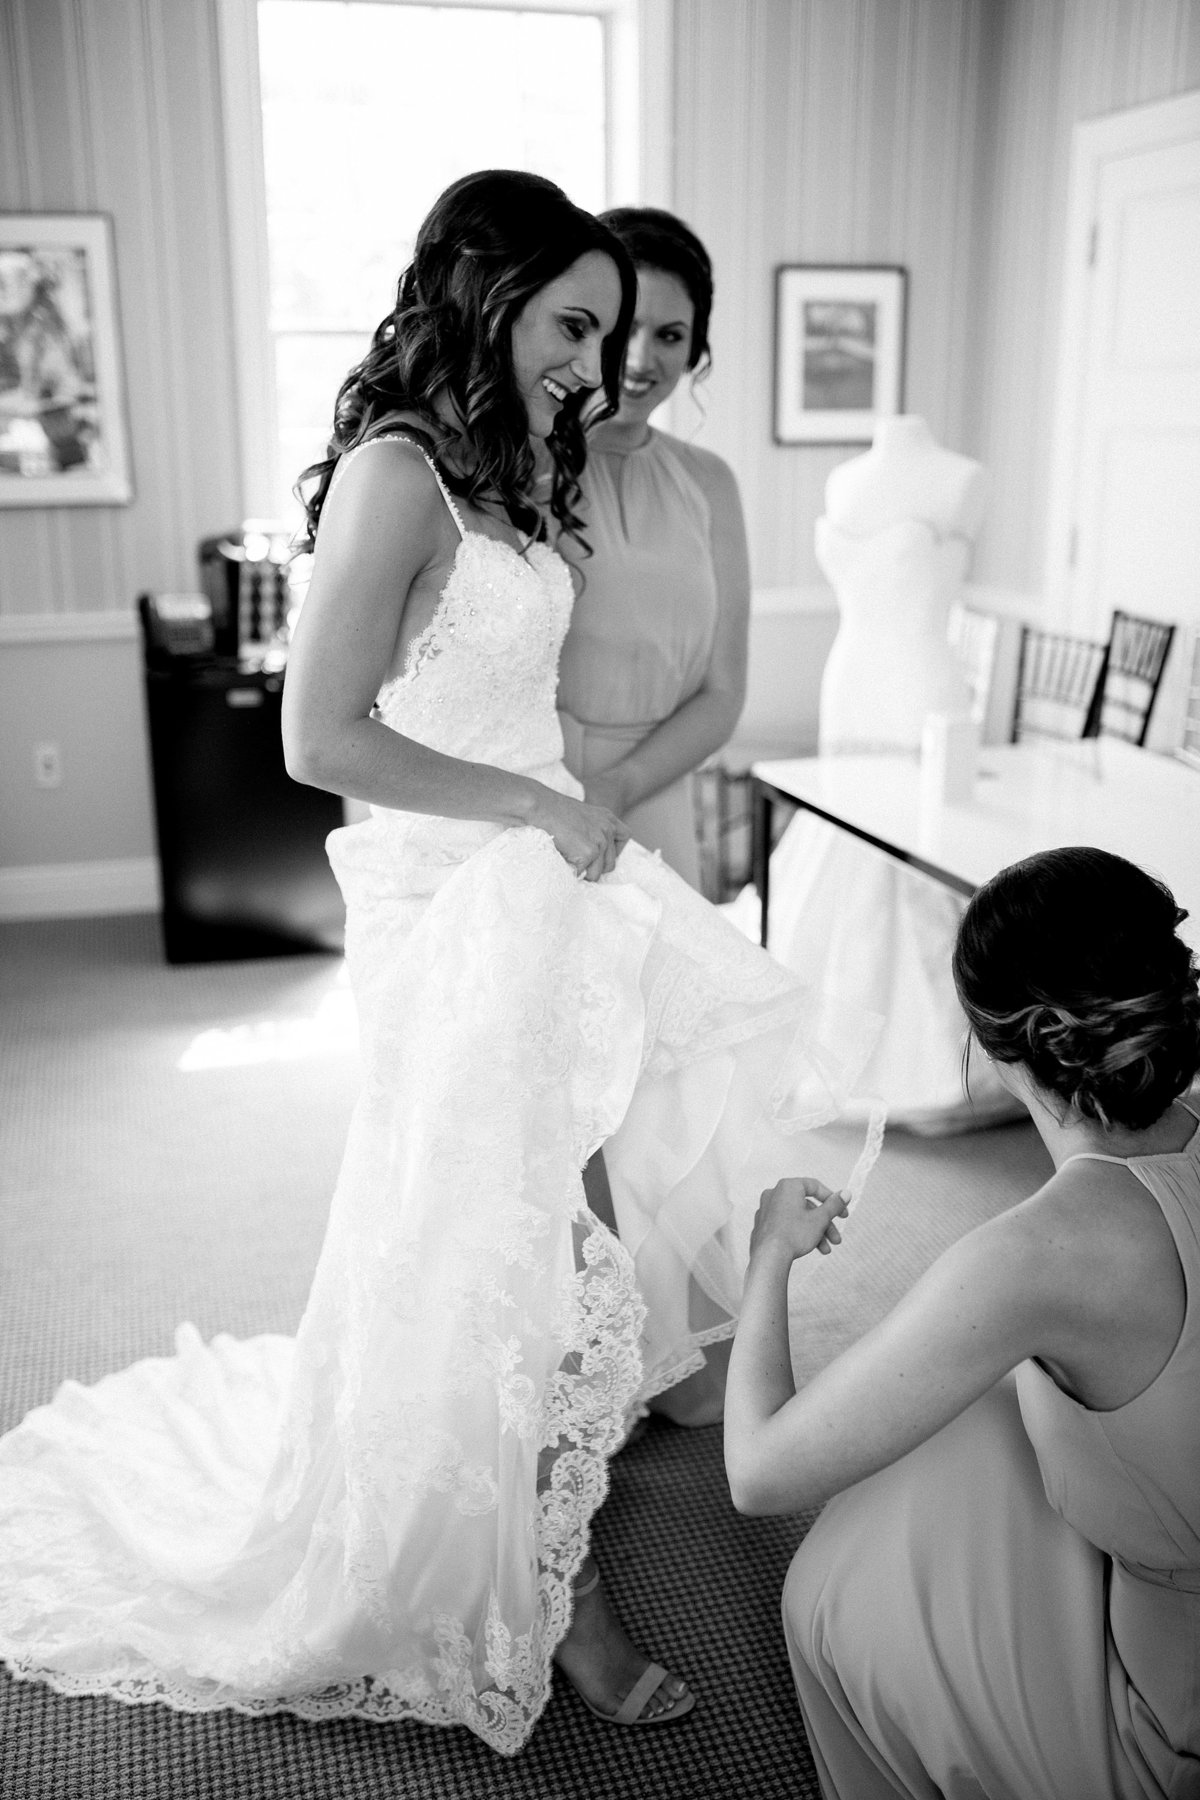 Shuster-Wedding-Grosse-Pointe-War-Memorial-Breanne-Rochelle-Photography18